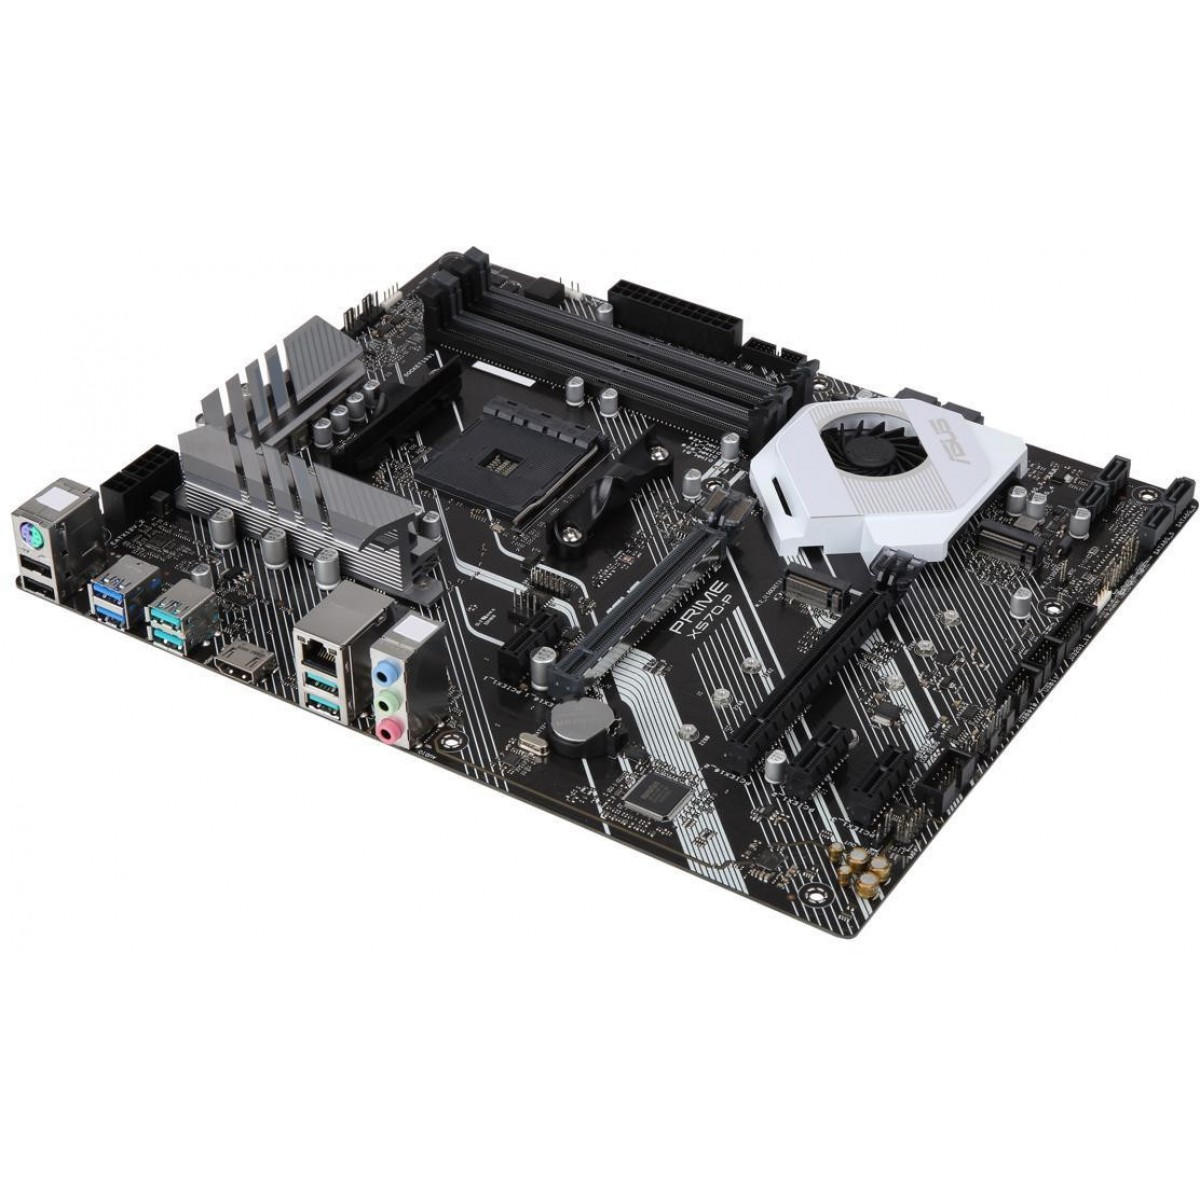 Placa Mãe Asus Prime X570-P, Chipset X570, AMD AM4, ATX, DDR4